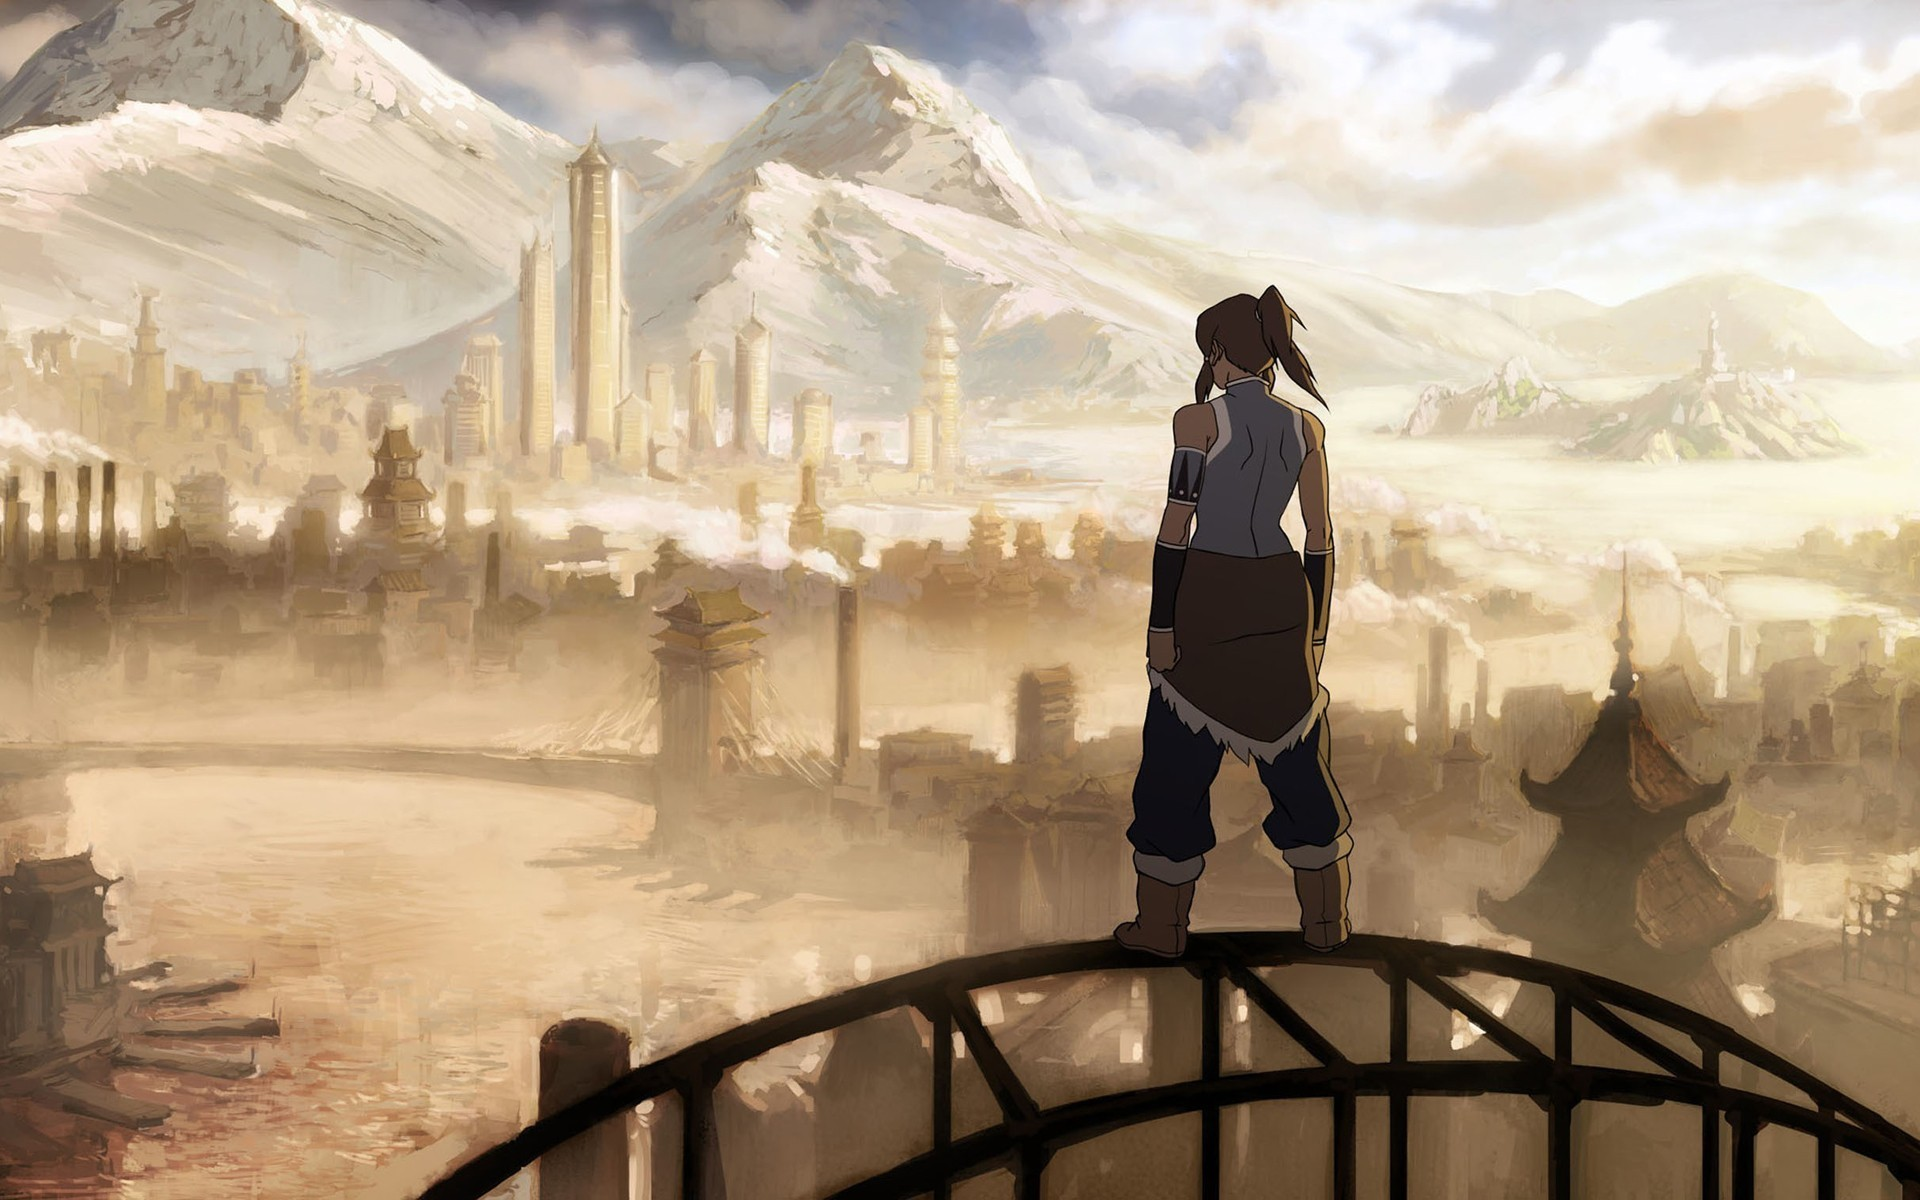 1920x1200 Korra - Avatar - Legend of Korra Wallpaper #4378